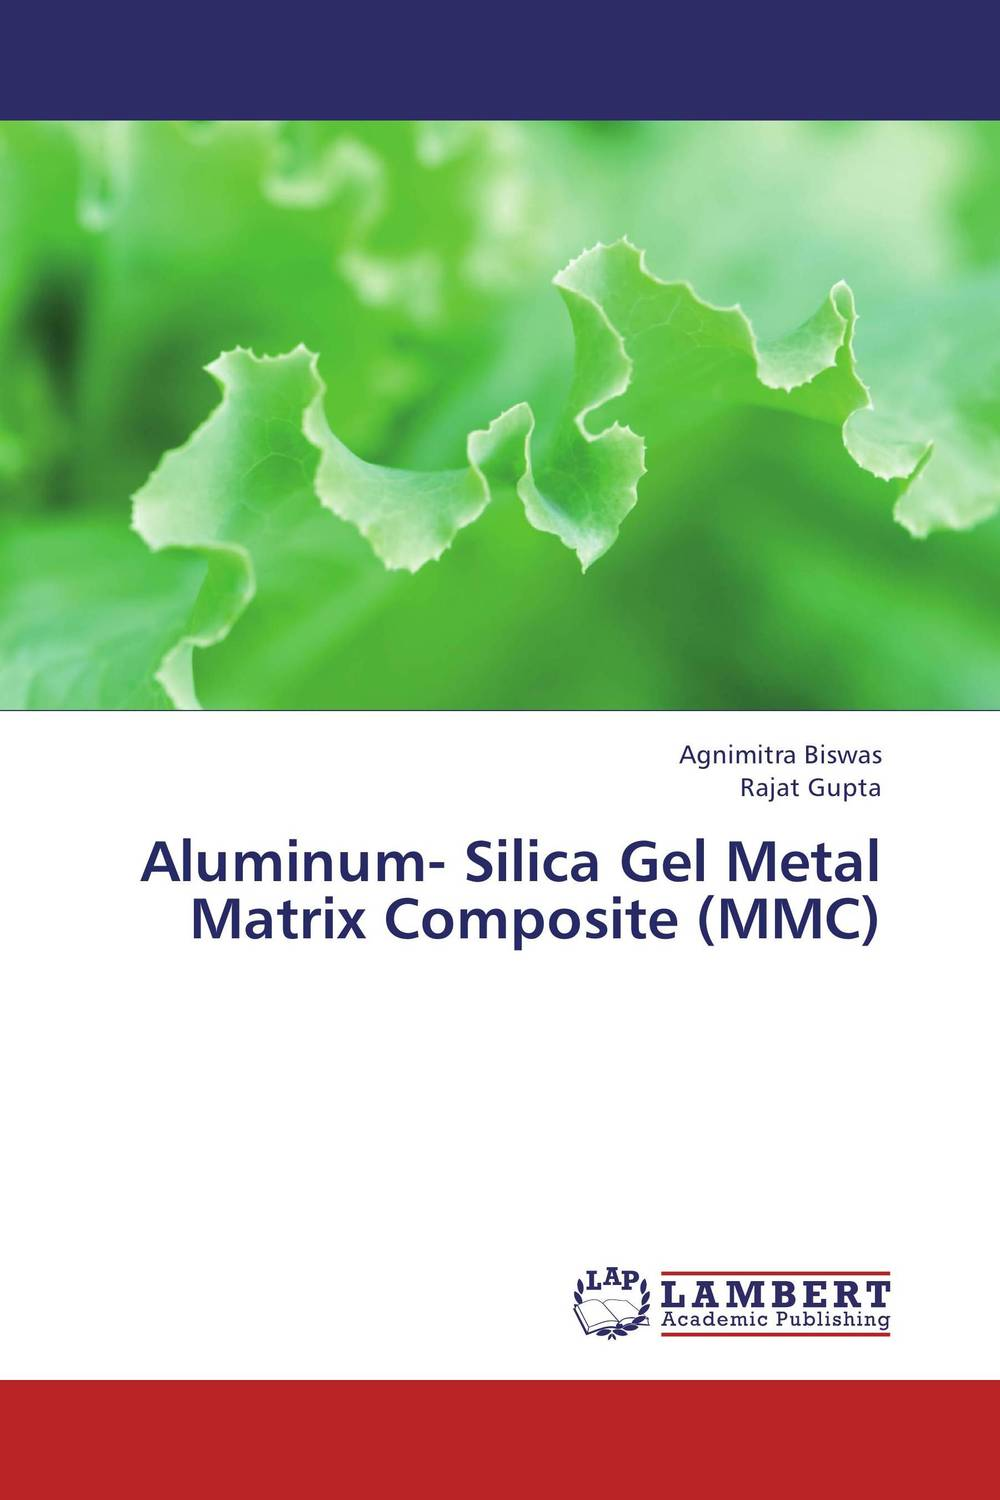 Aluminum- Silica Gel Metal Matrix Composite (MMC) composite structures design safety and innovation